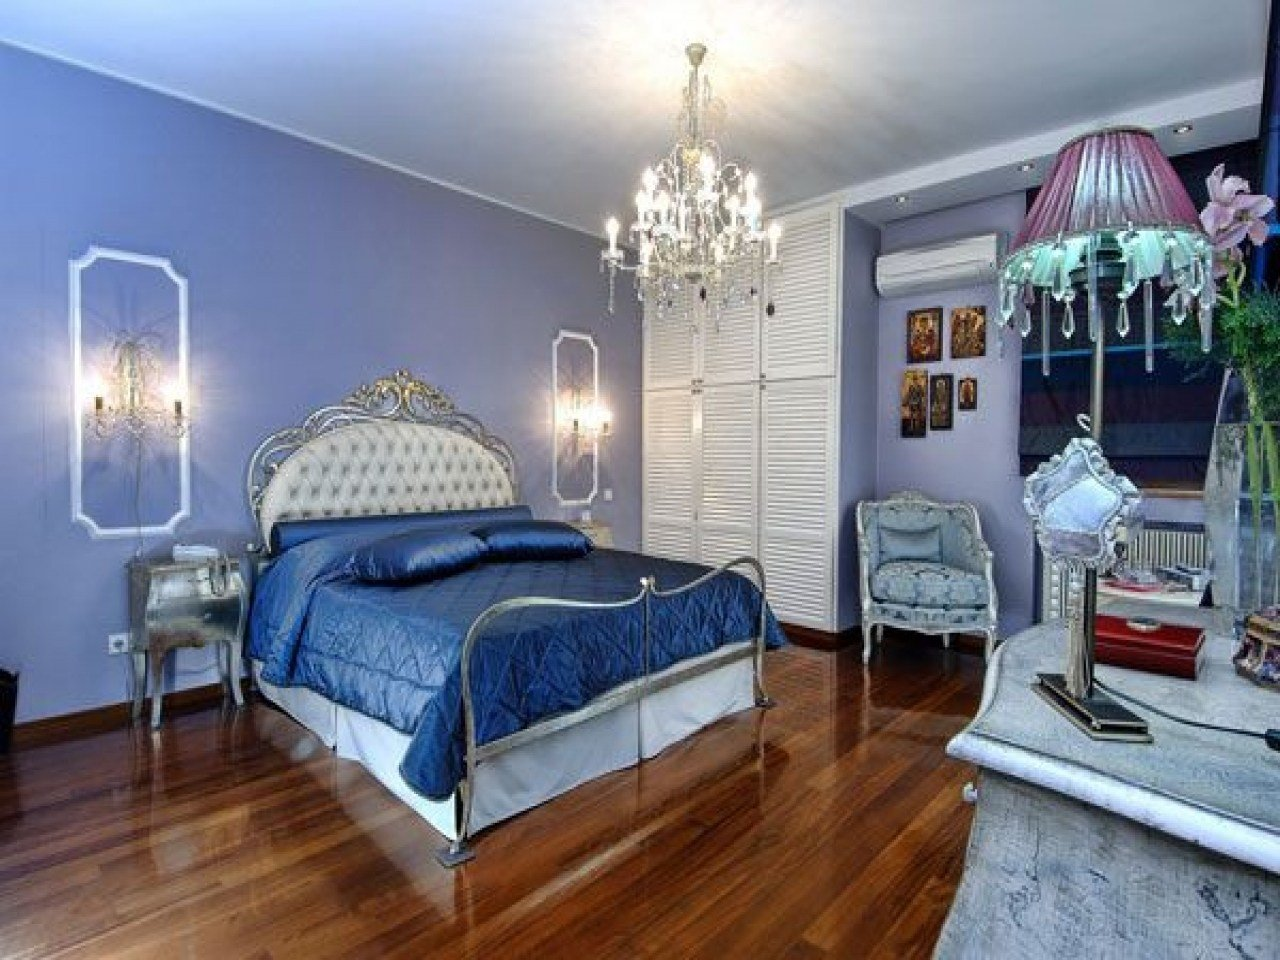 Best Greek Bedroom Decor Greek Kitchen Design Greek Bedroom Design Bedroom Designs Ideasonthemove Com With Pictures